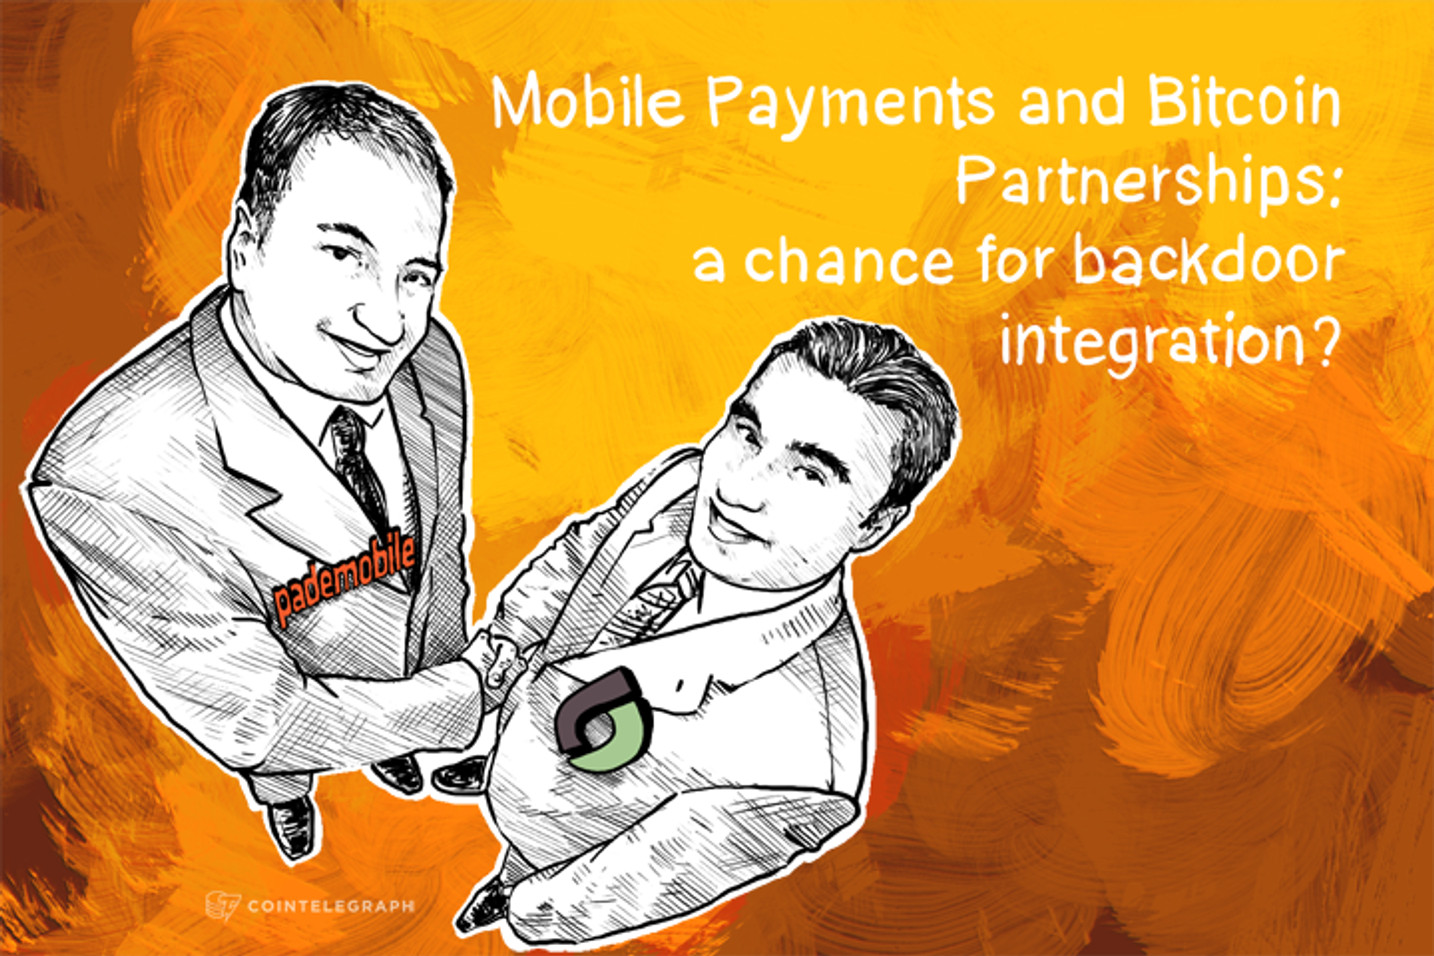 Mobile Payments and Bitcoin Partnerships: a chance for backdoor integration?